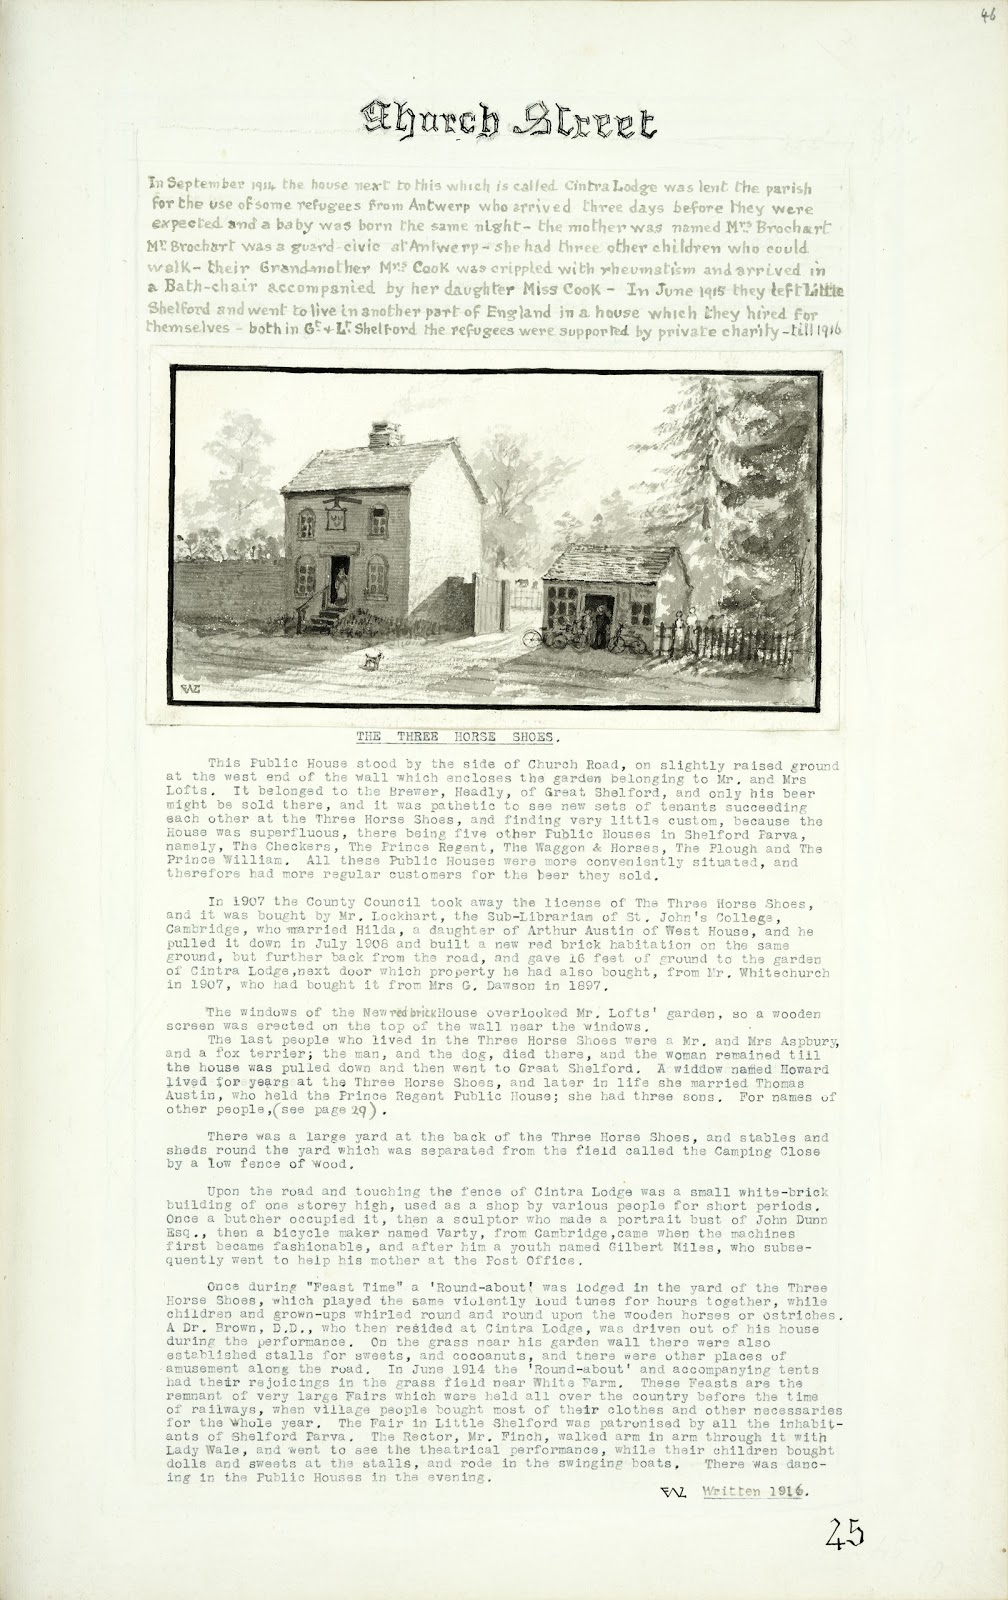 A Record of Shelford Parva by Fanny Wale P45  fo. 46, page 45: At the top: note on Cintra Lodge, used by refugees from Antwerp in 1915. A watercolour of the Three Horseshoes and small building nearby in Shelford by F.L.W. Underneath is a description of the public house 1916. [not in photographic copy]